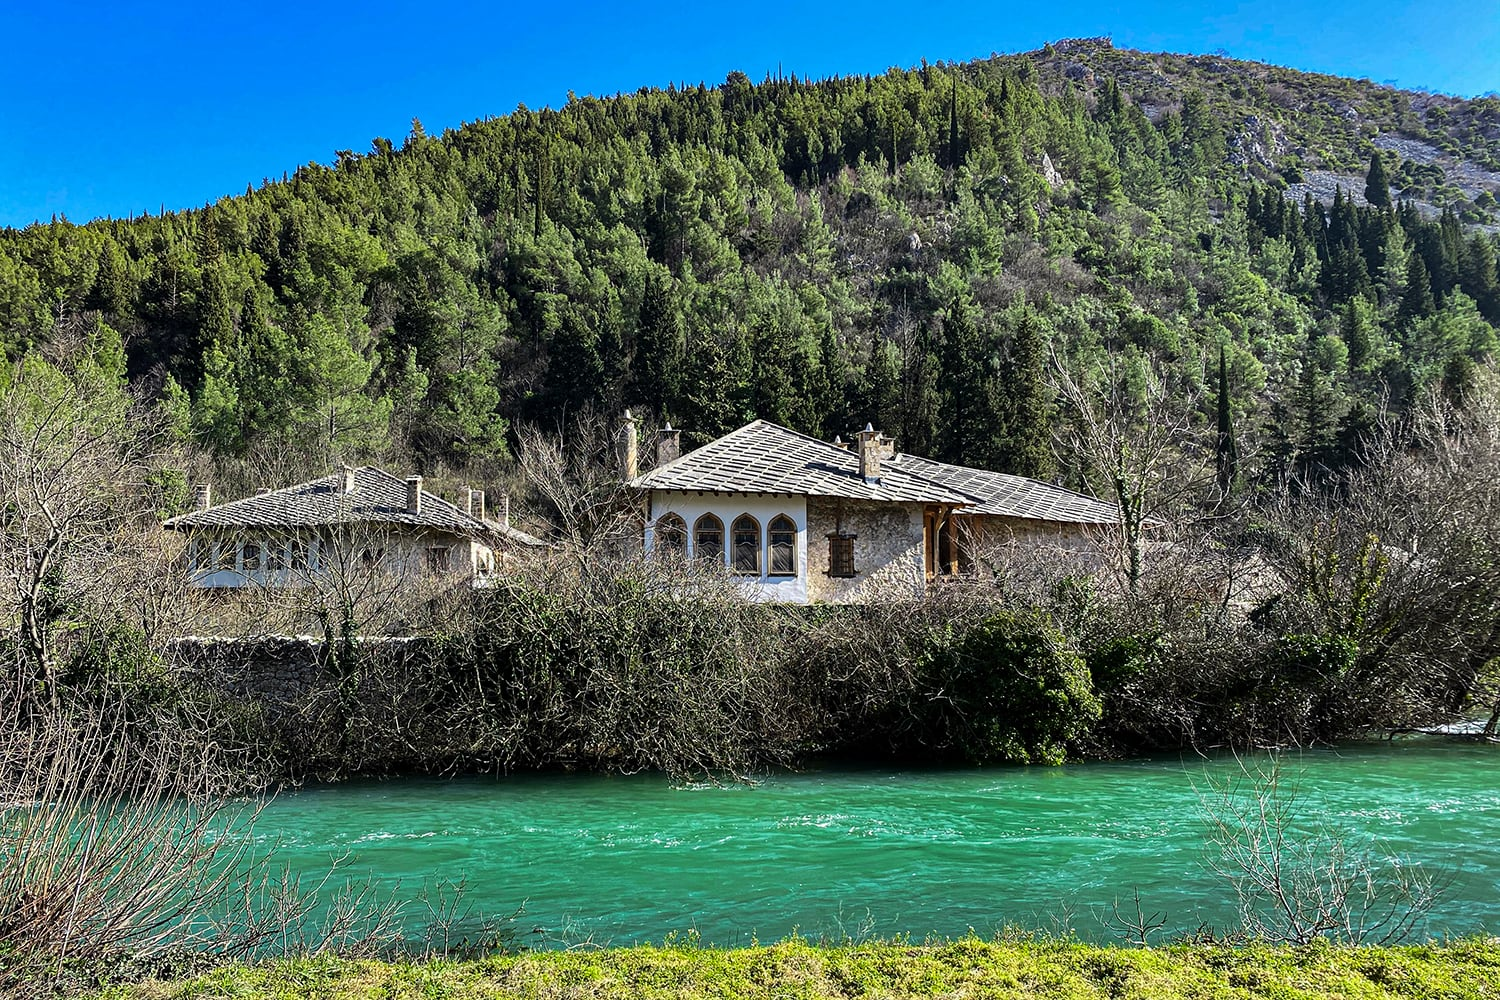 From the Ice Lake to the Sunny Village of Stolac 17